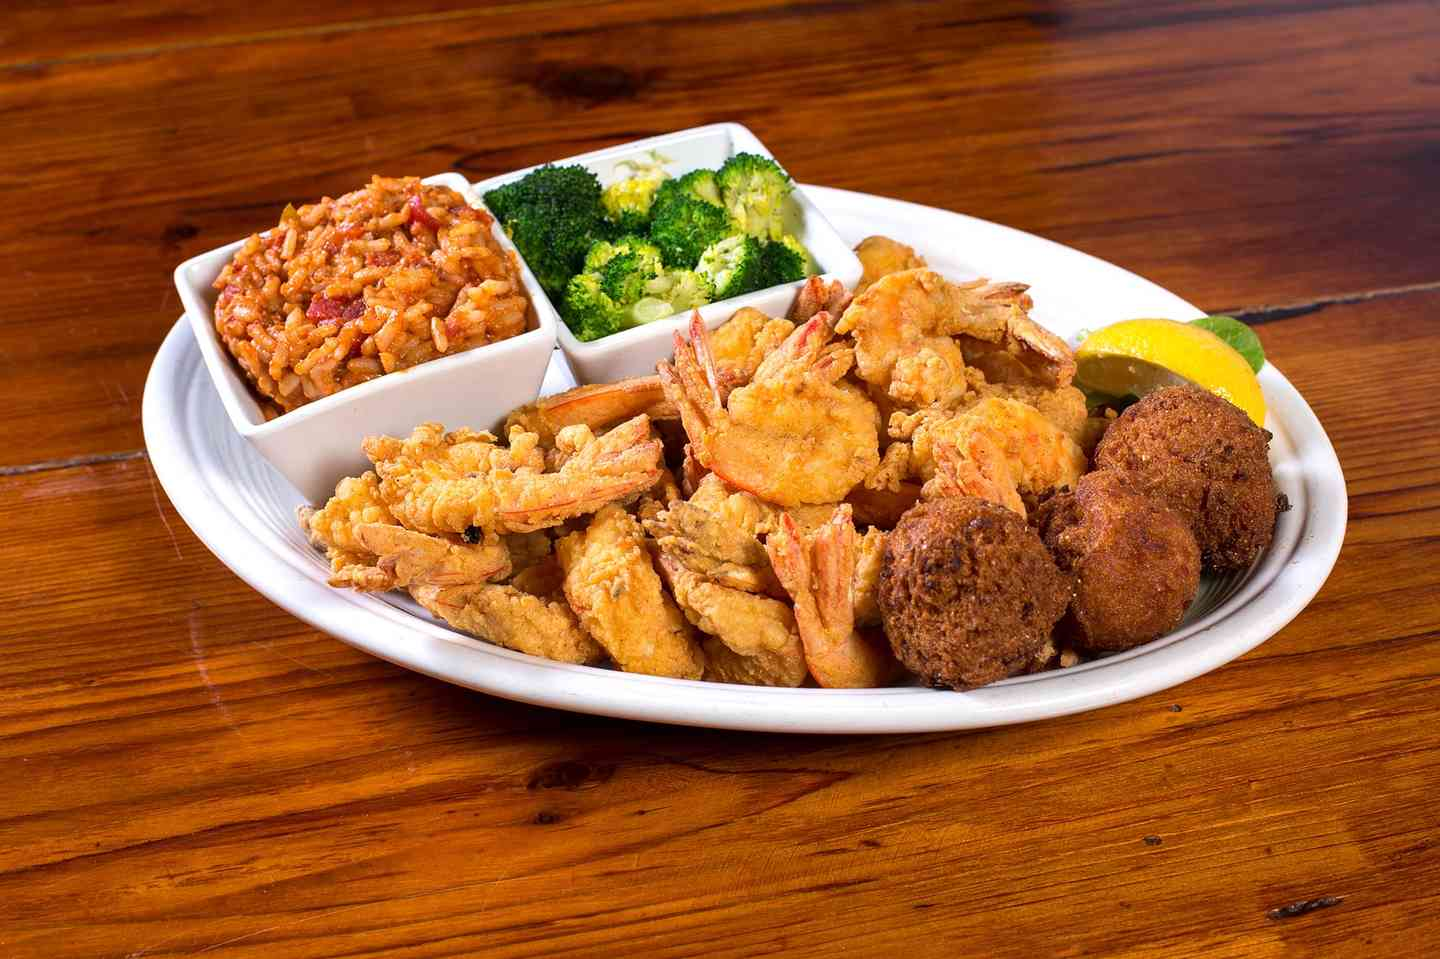 Captain's Shrimp Platter